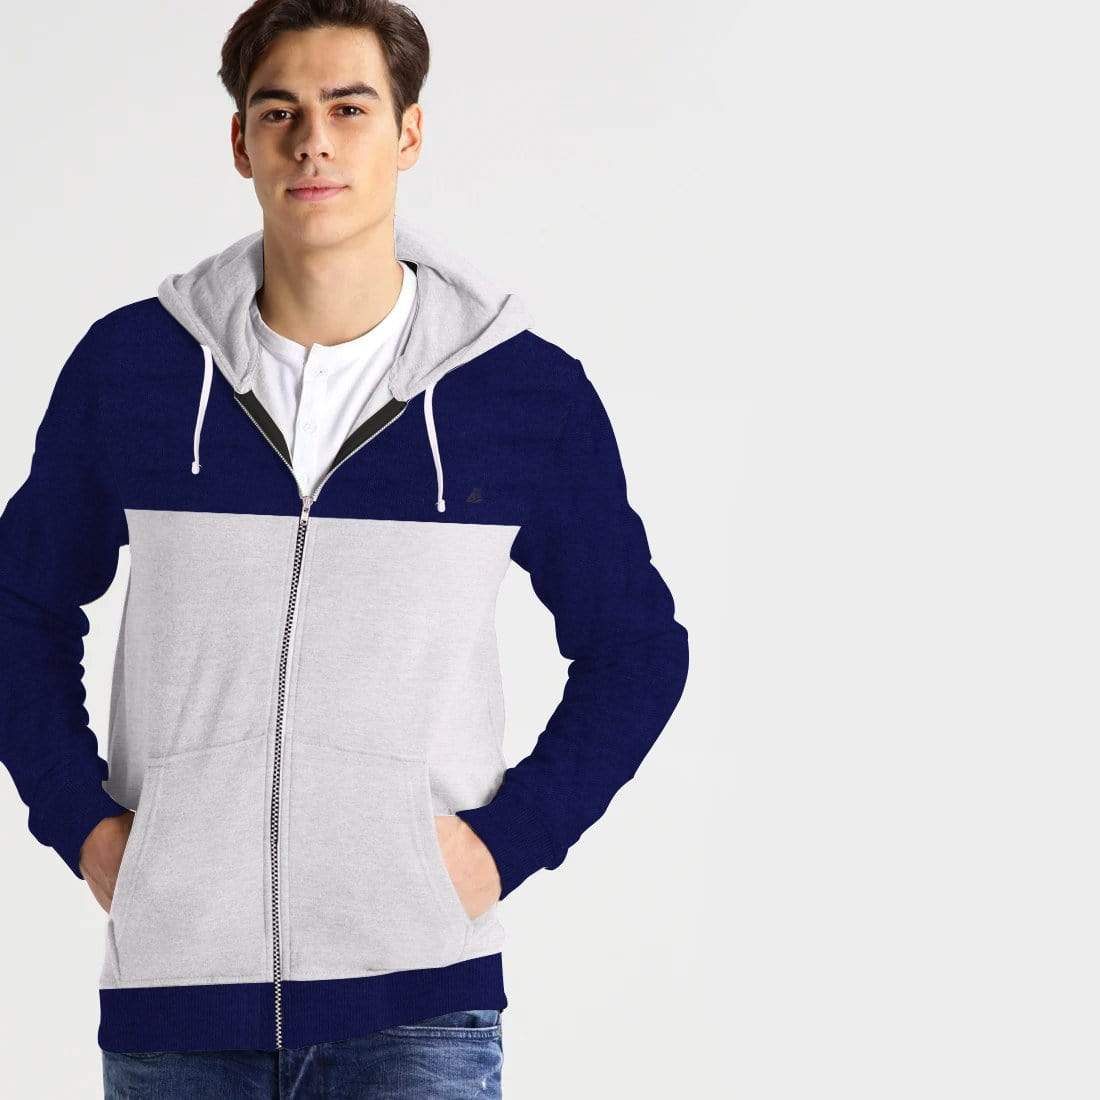 Stone Harbor Men's Hoodies Navy/White / S Men's Stone Harbor Flowa Zipper Hoodie